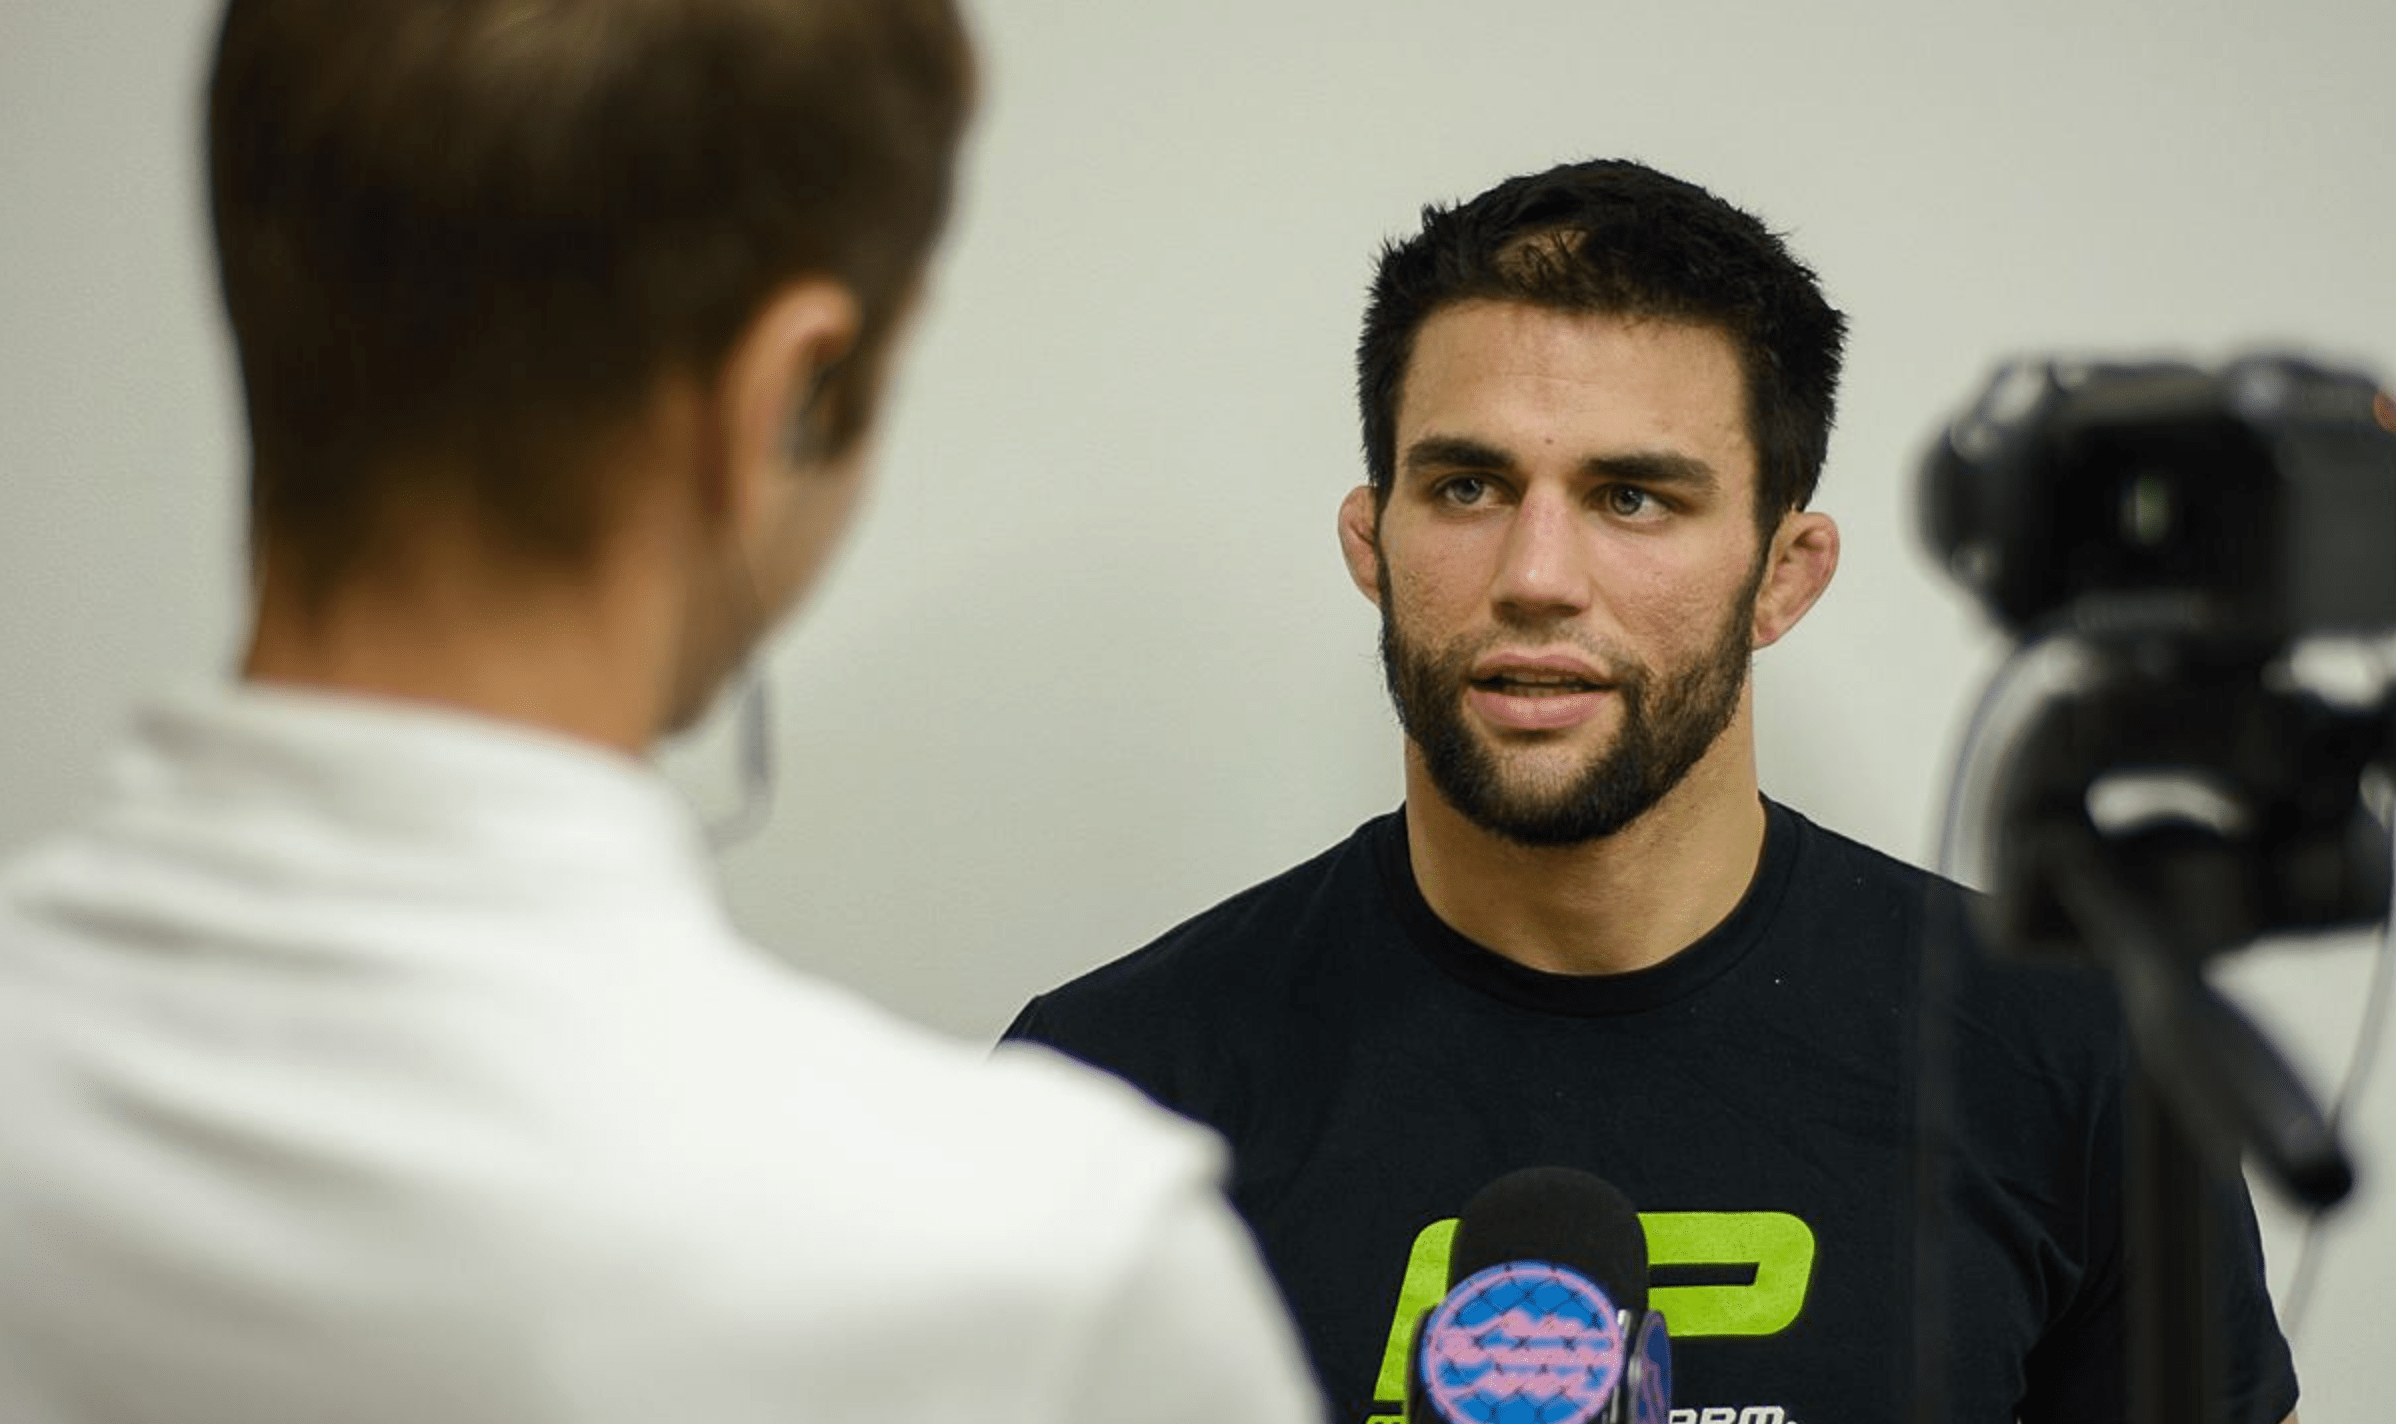 Exclusive: Garry Tonon Interview Ahead Of ONE: A New Era (Video)